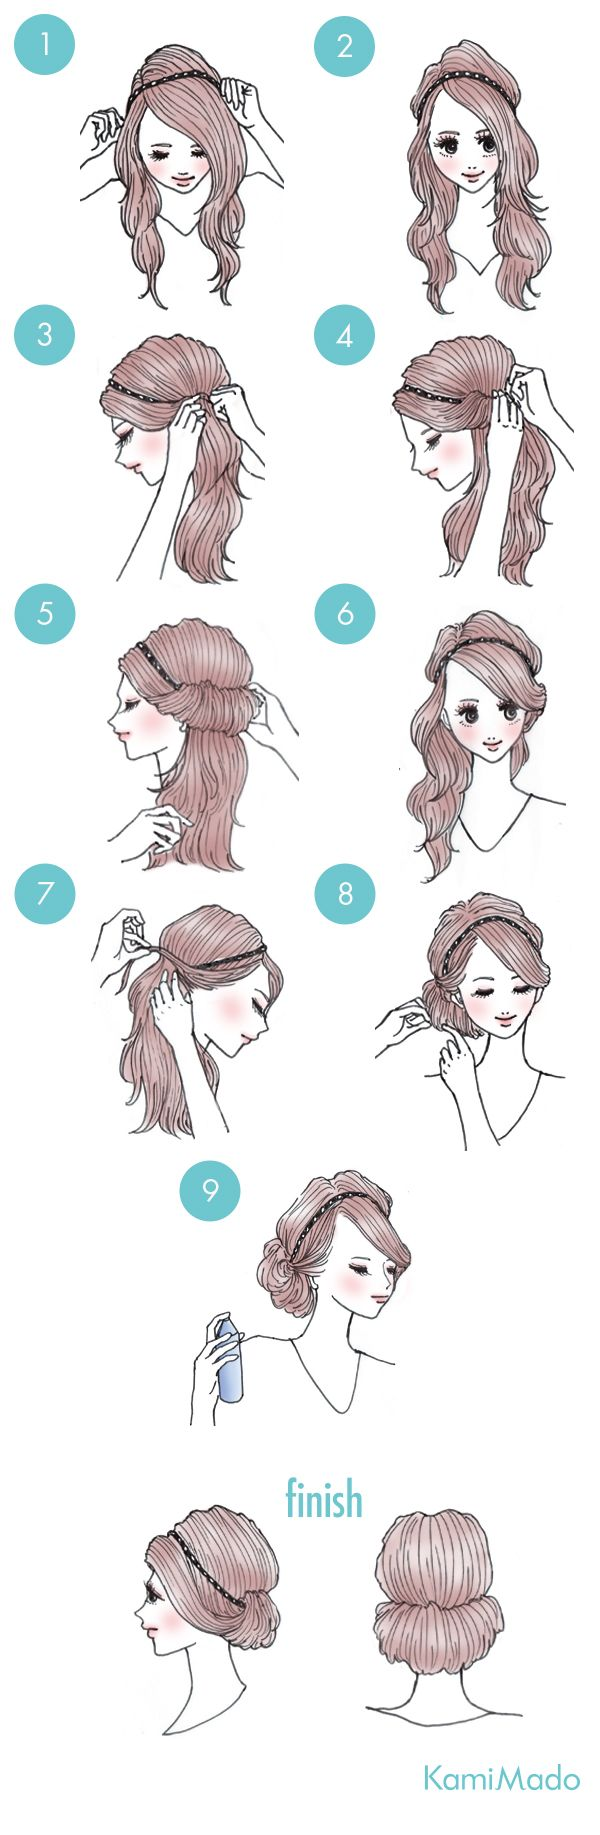 #Kamimado. A simple updo hairstyle for hair of any length with nothing but a  hair belt.